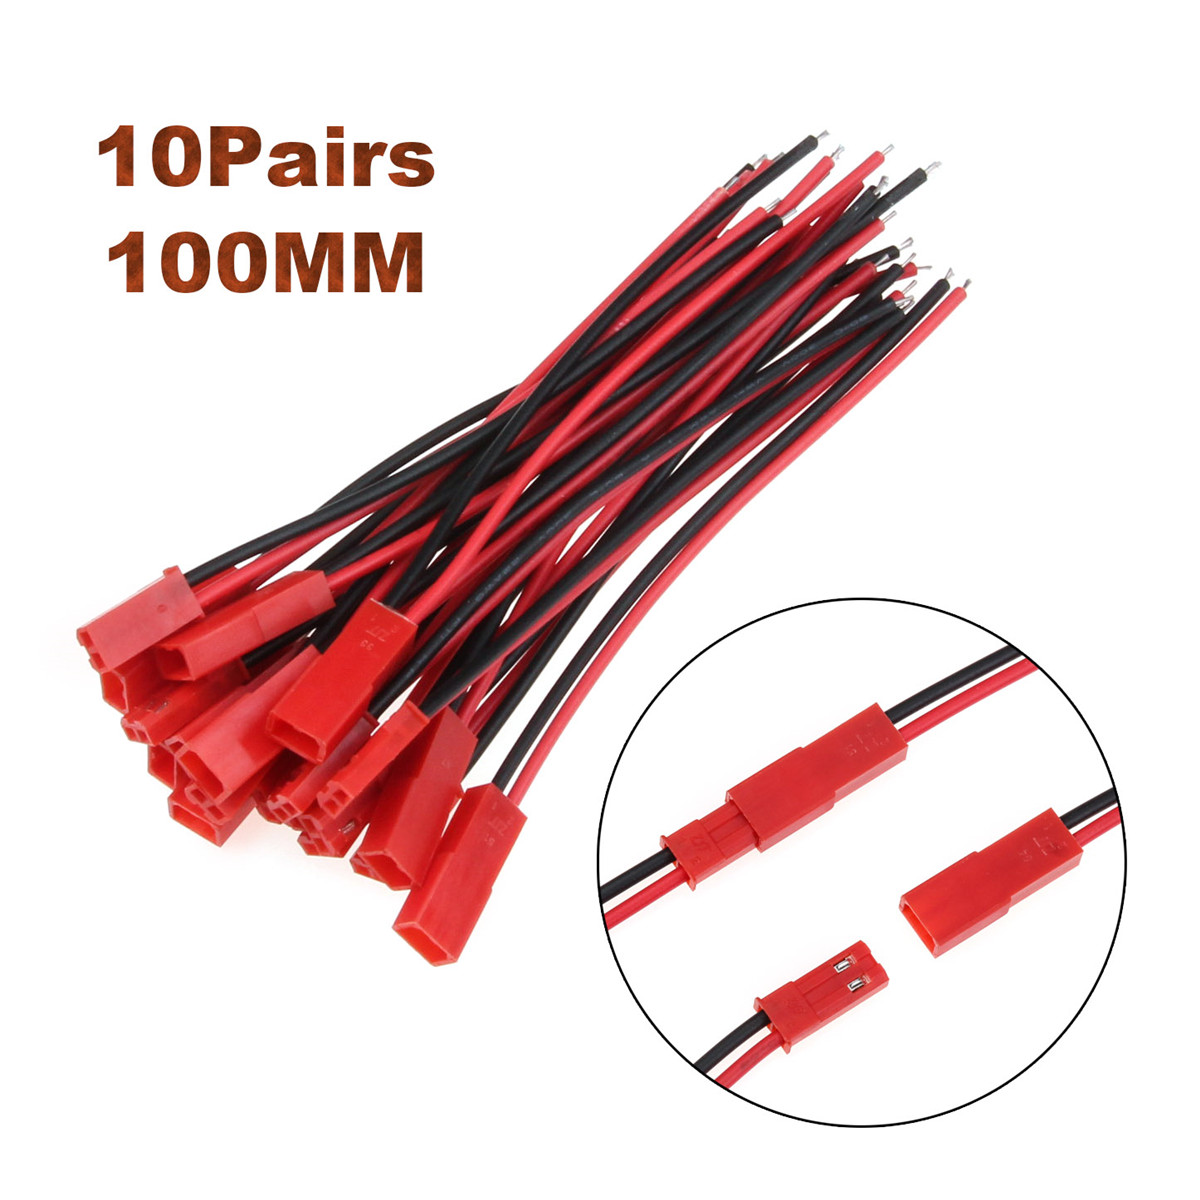 2/10Pairs 100/150mm 2 Pin Connector JST Plug Cable Male/Female For RC BEC Battery Helicopter DIY FPV Drone Quadcopter 50pcs 25pairs 2 pin jst 100mm pitch 2 54mm male and female wire connector plug cable for diy rc battry model